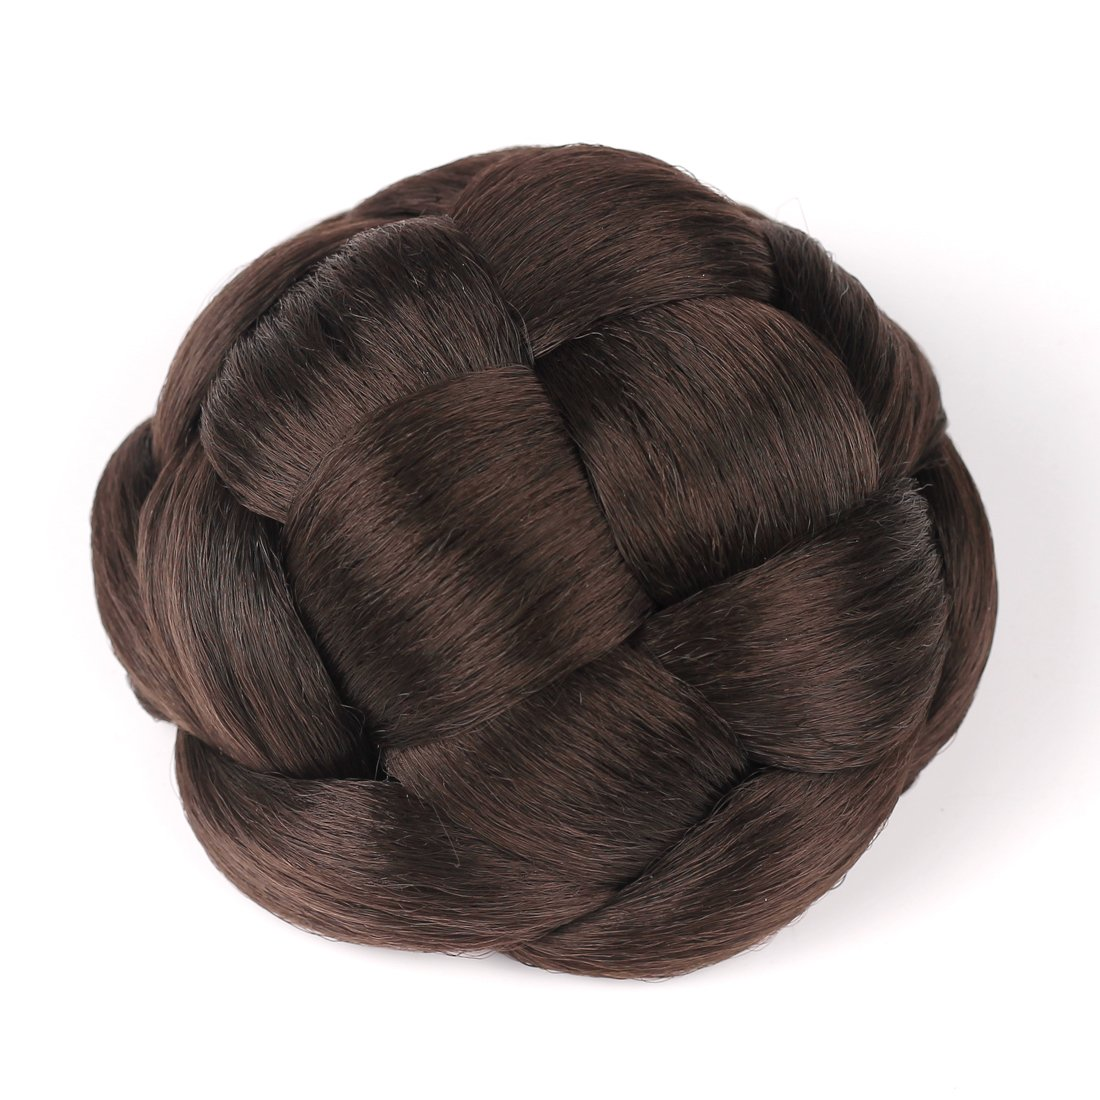 Smilco Braid Fake Hair Bun Hairpiece Extension for Women Short Hair (Brown) by Smilco